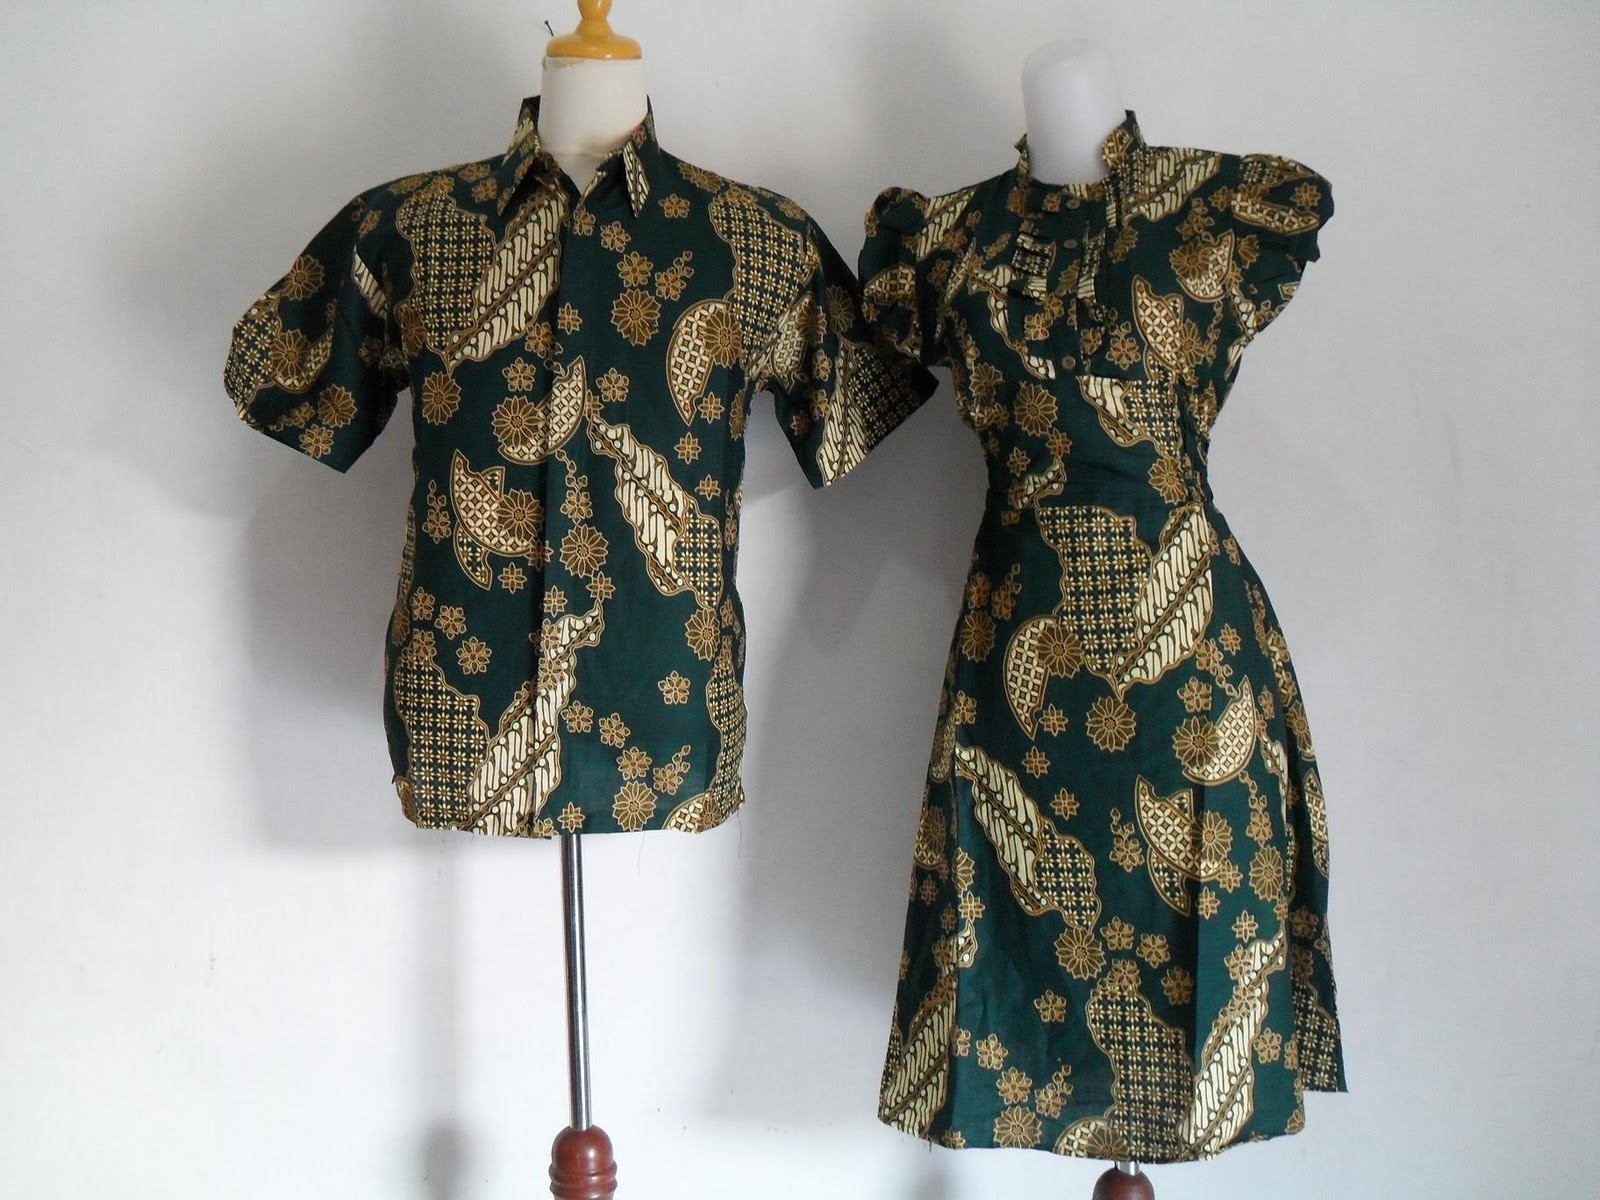 One Stop Batik Online Shop Sarimbit Jagad Kipas Hijau Dress One Stop Batik Online Shop Sarimbit Jagad Kipas Hijau Dress